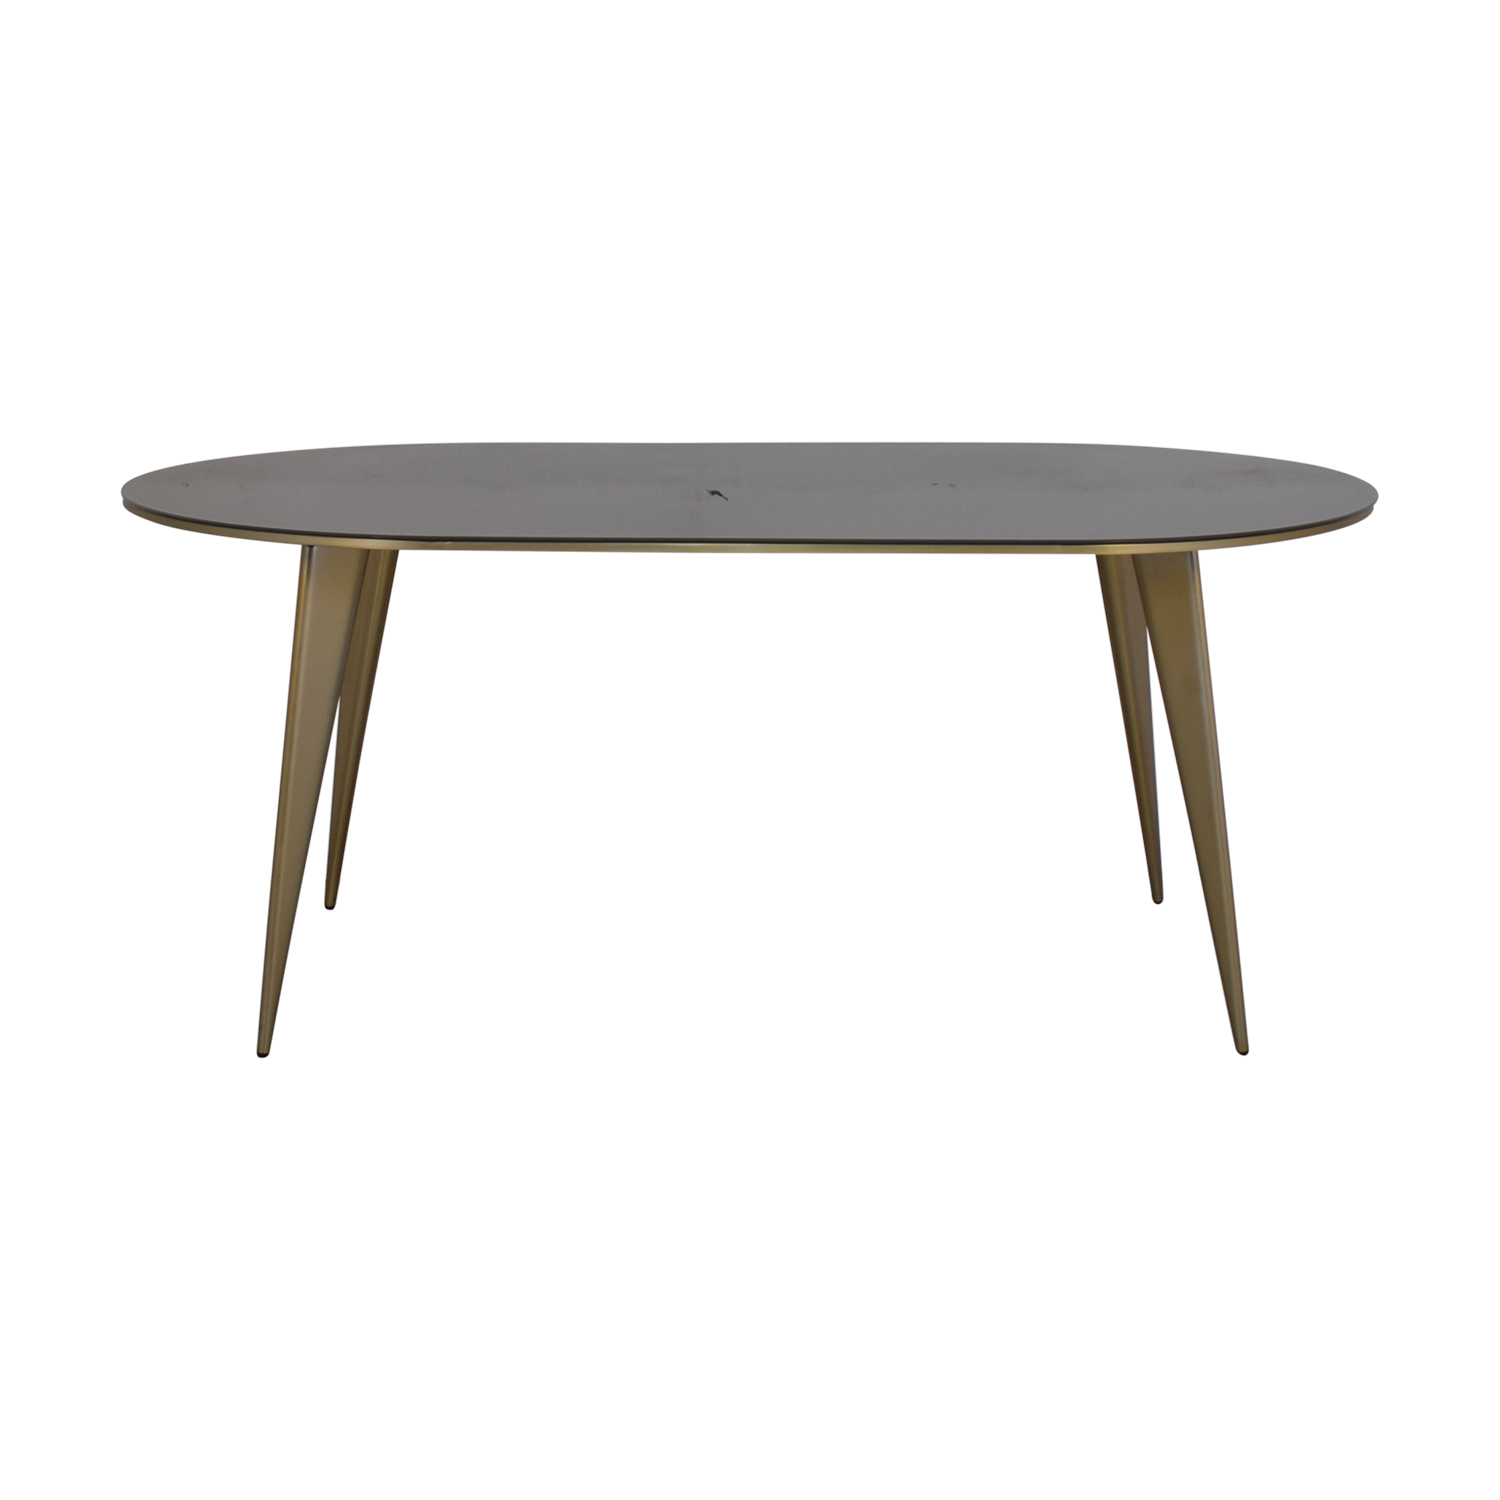 West Elm West Elm Arden Dining Table Dinner Tables